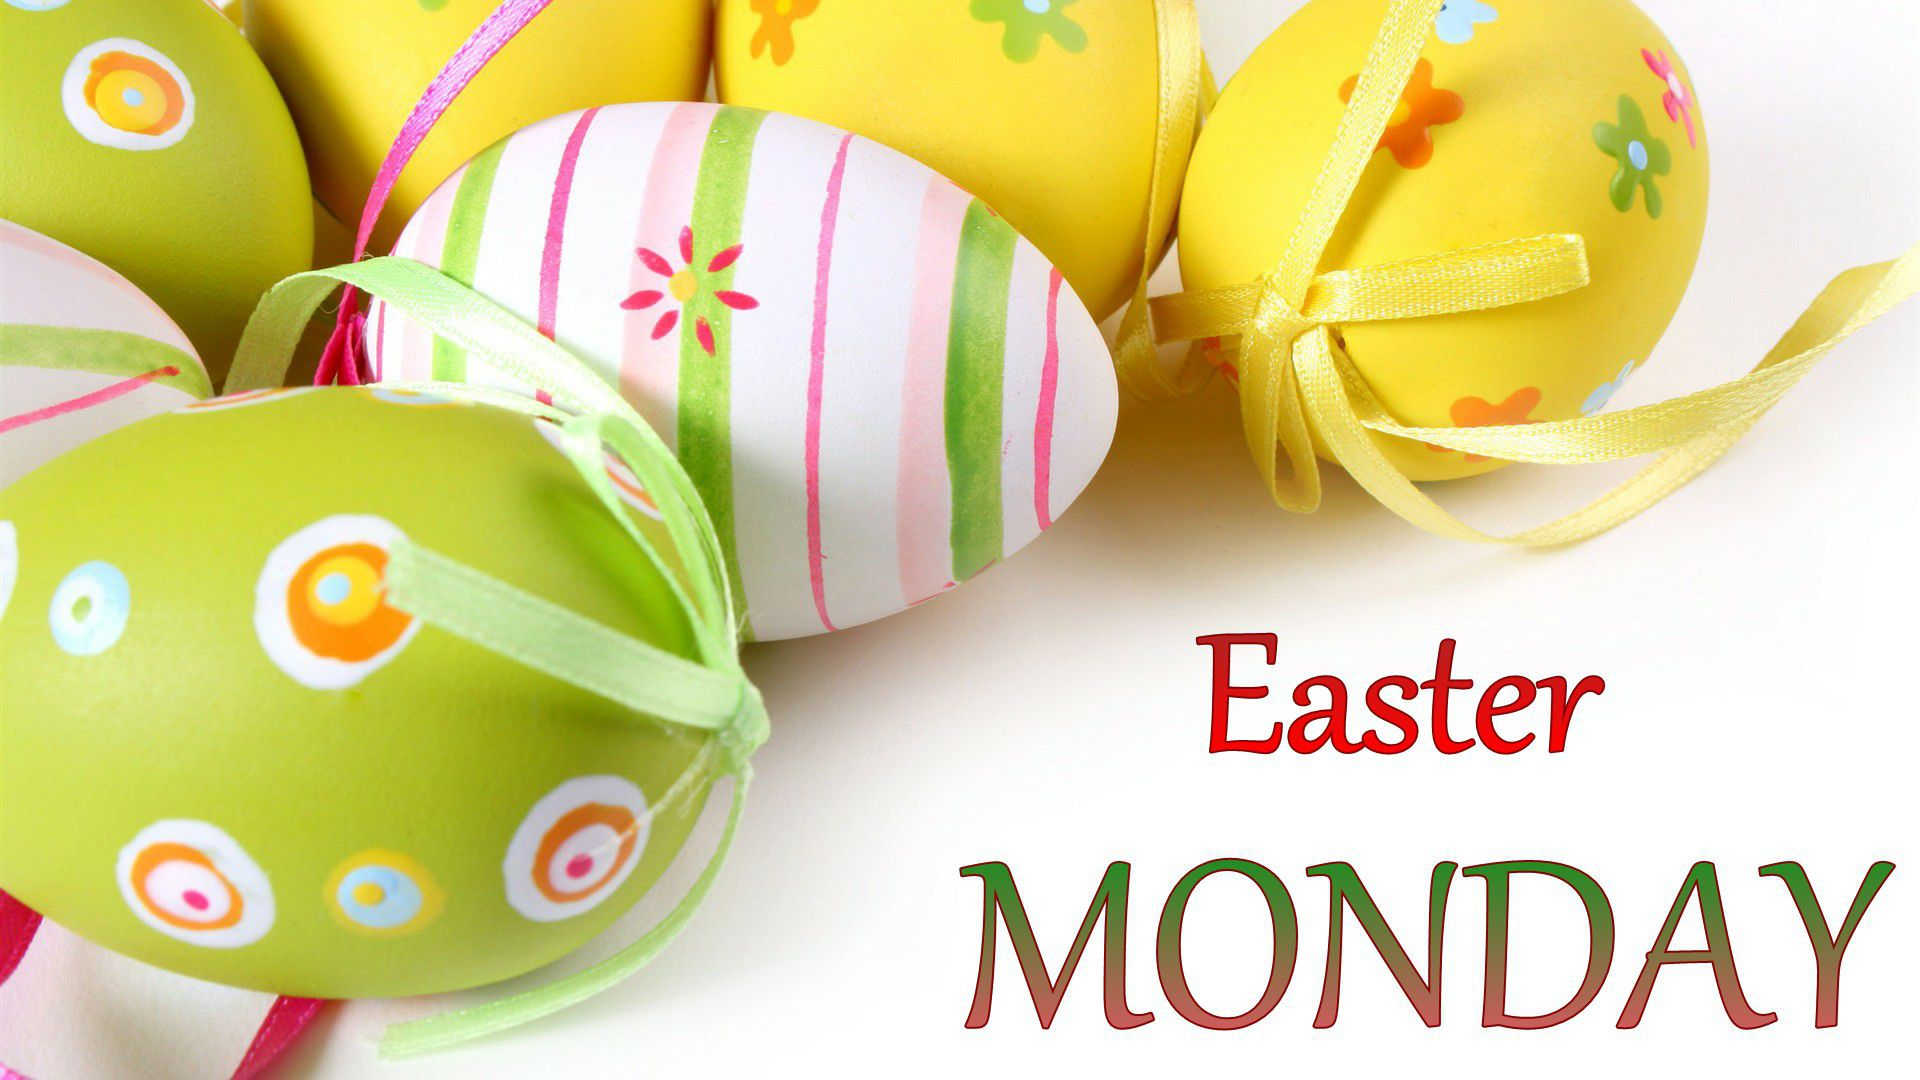 Happy Easter Monday Pictures